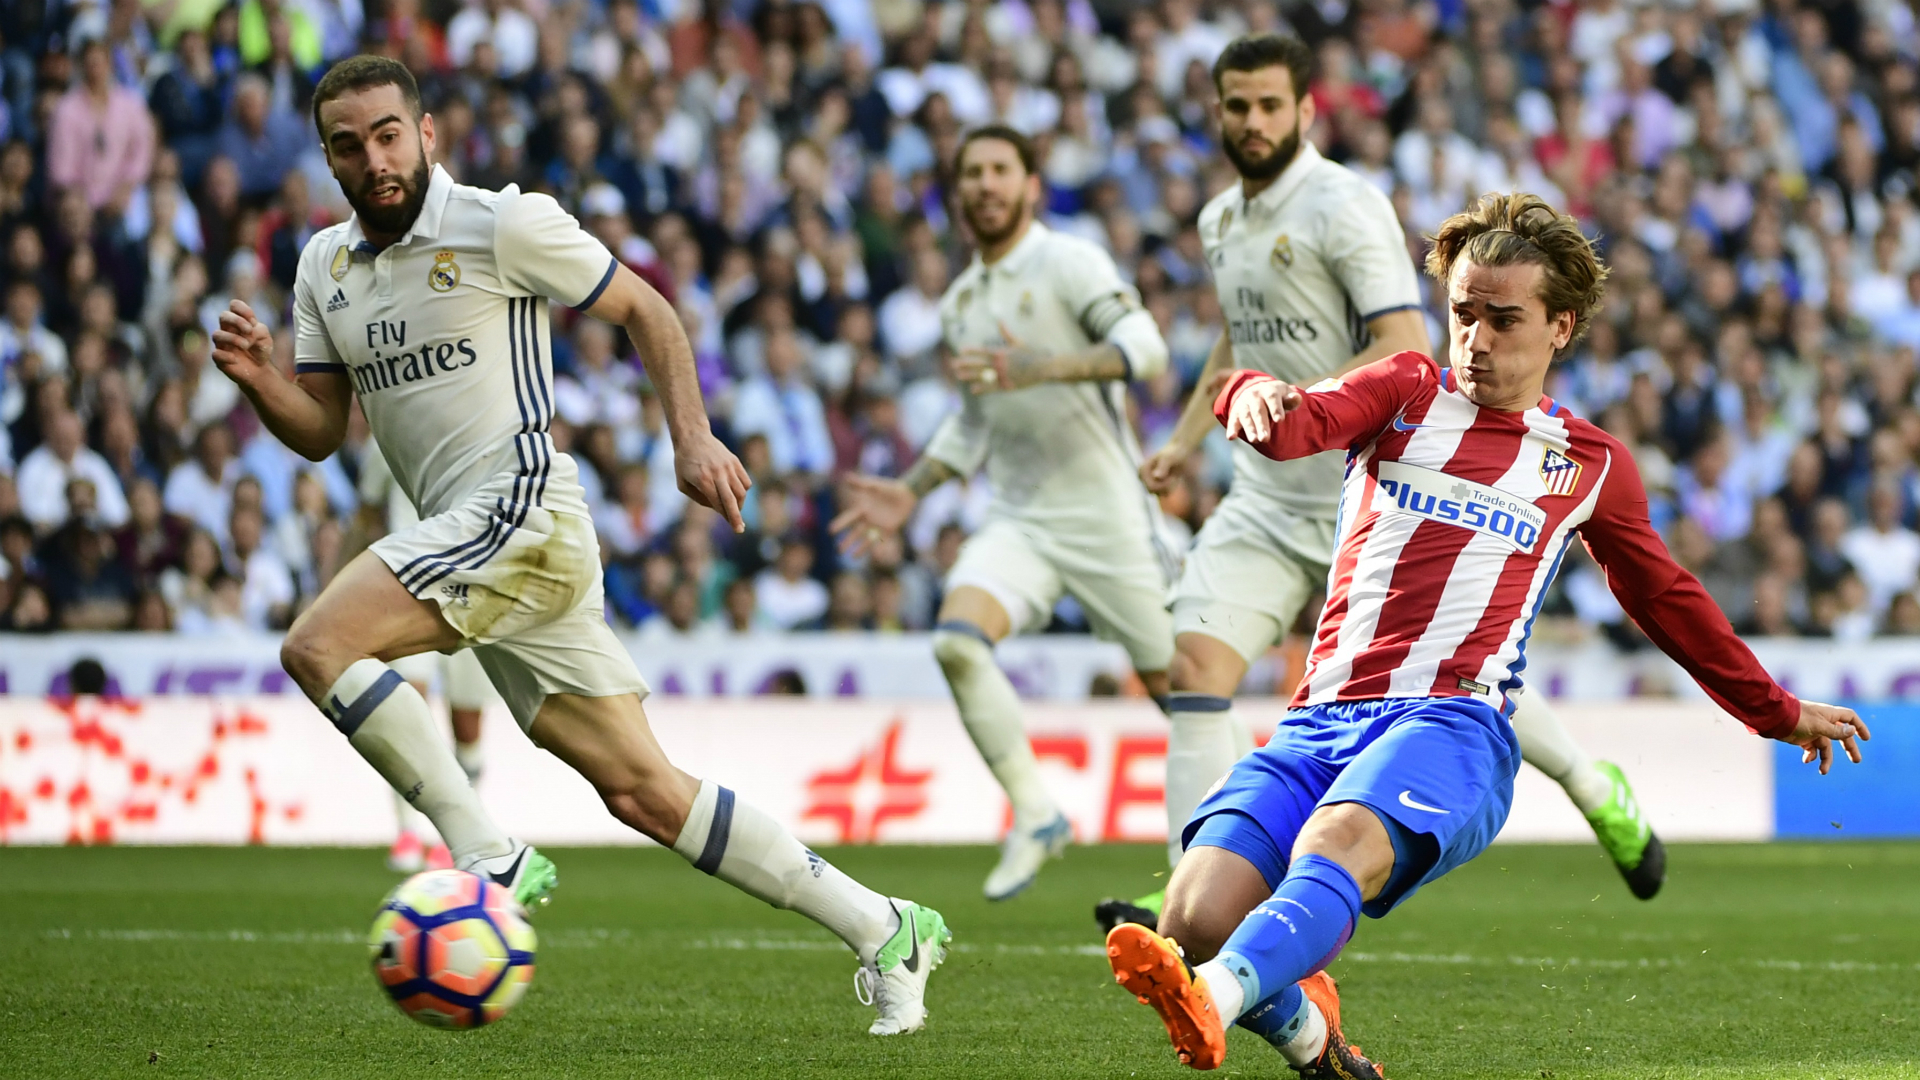 Atletico will hope Griezmann can fire them into a historic win